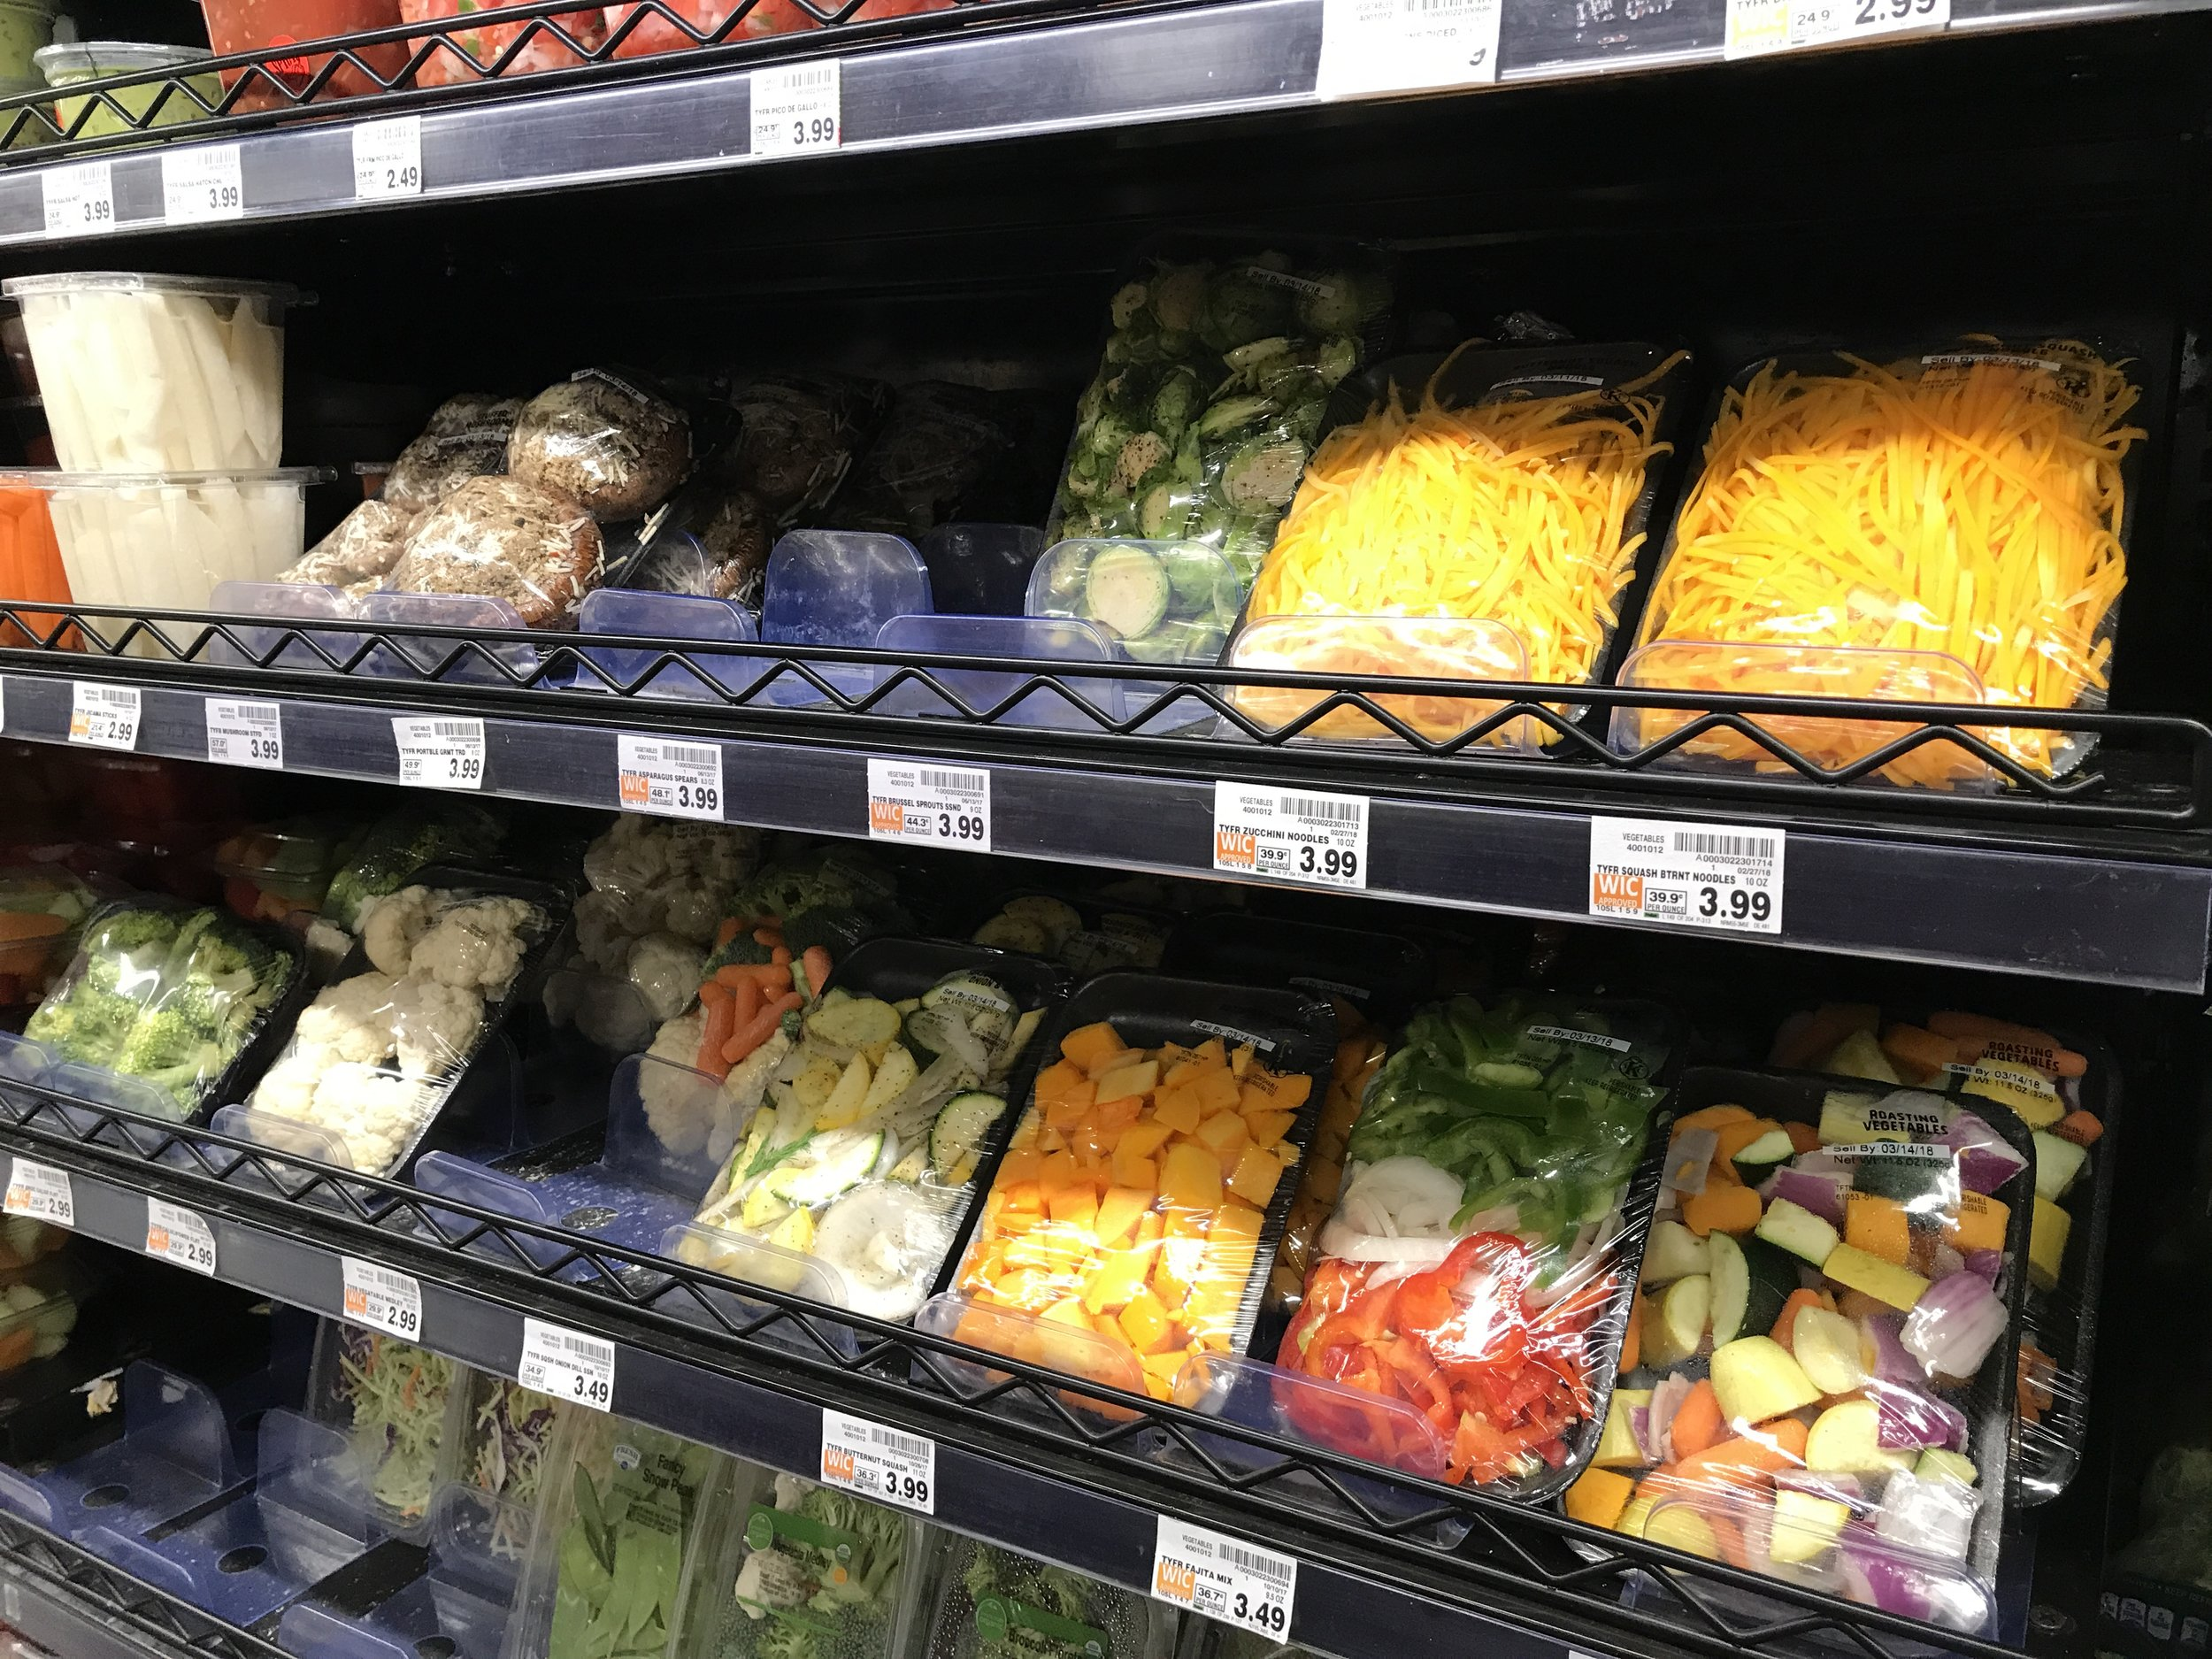 Pre-cut veggies are bit more money but will save you more time prepping.